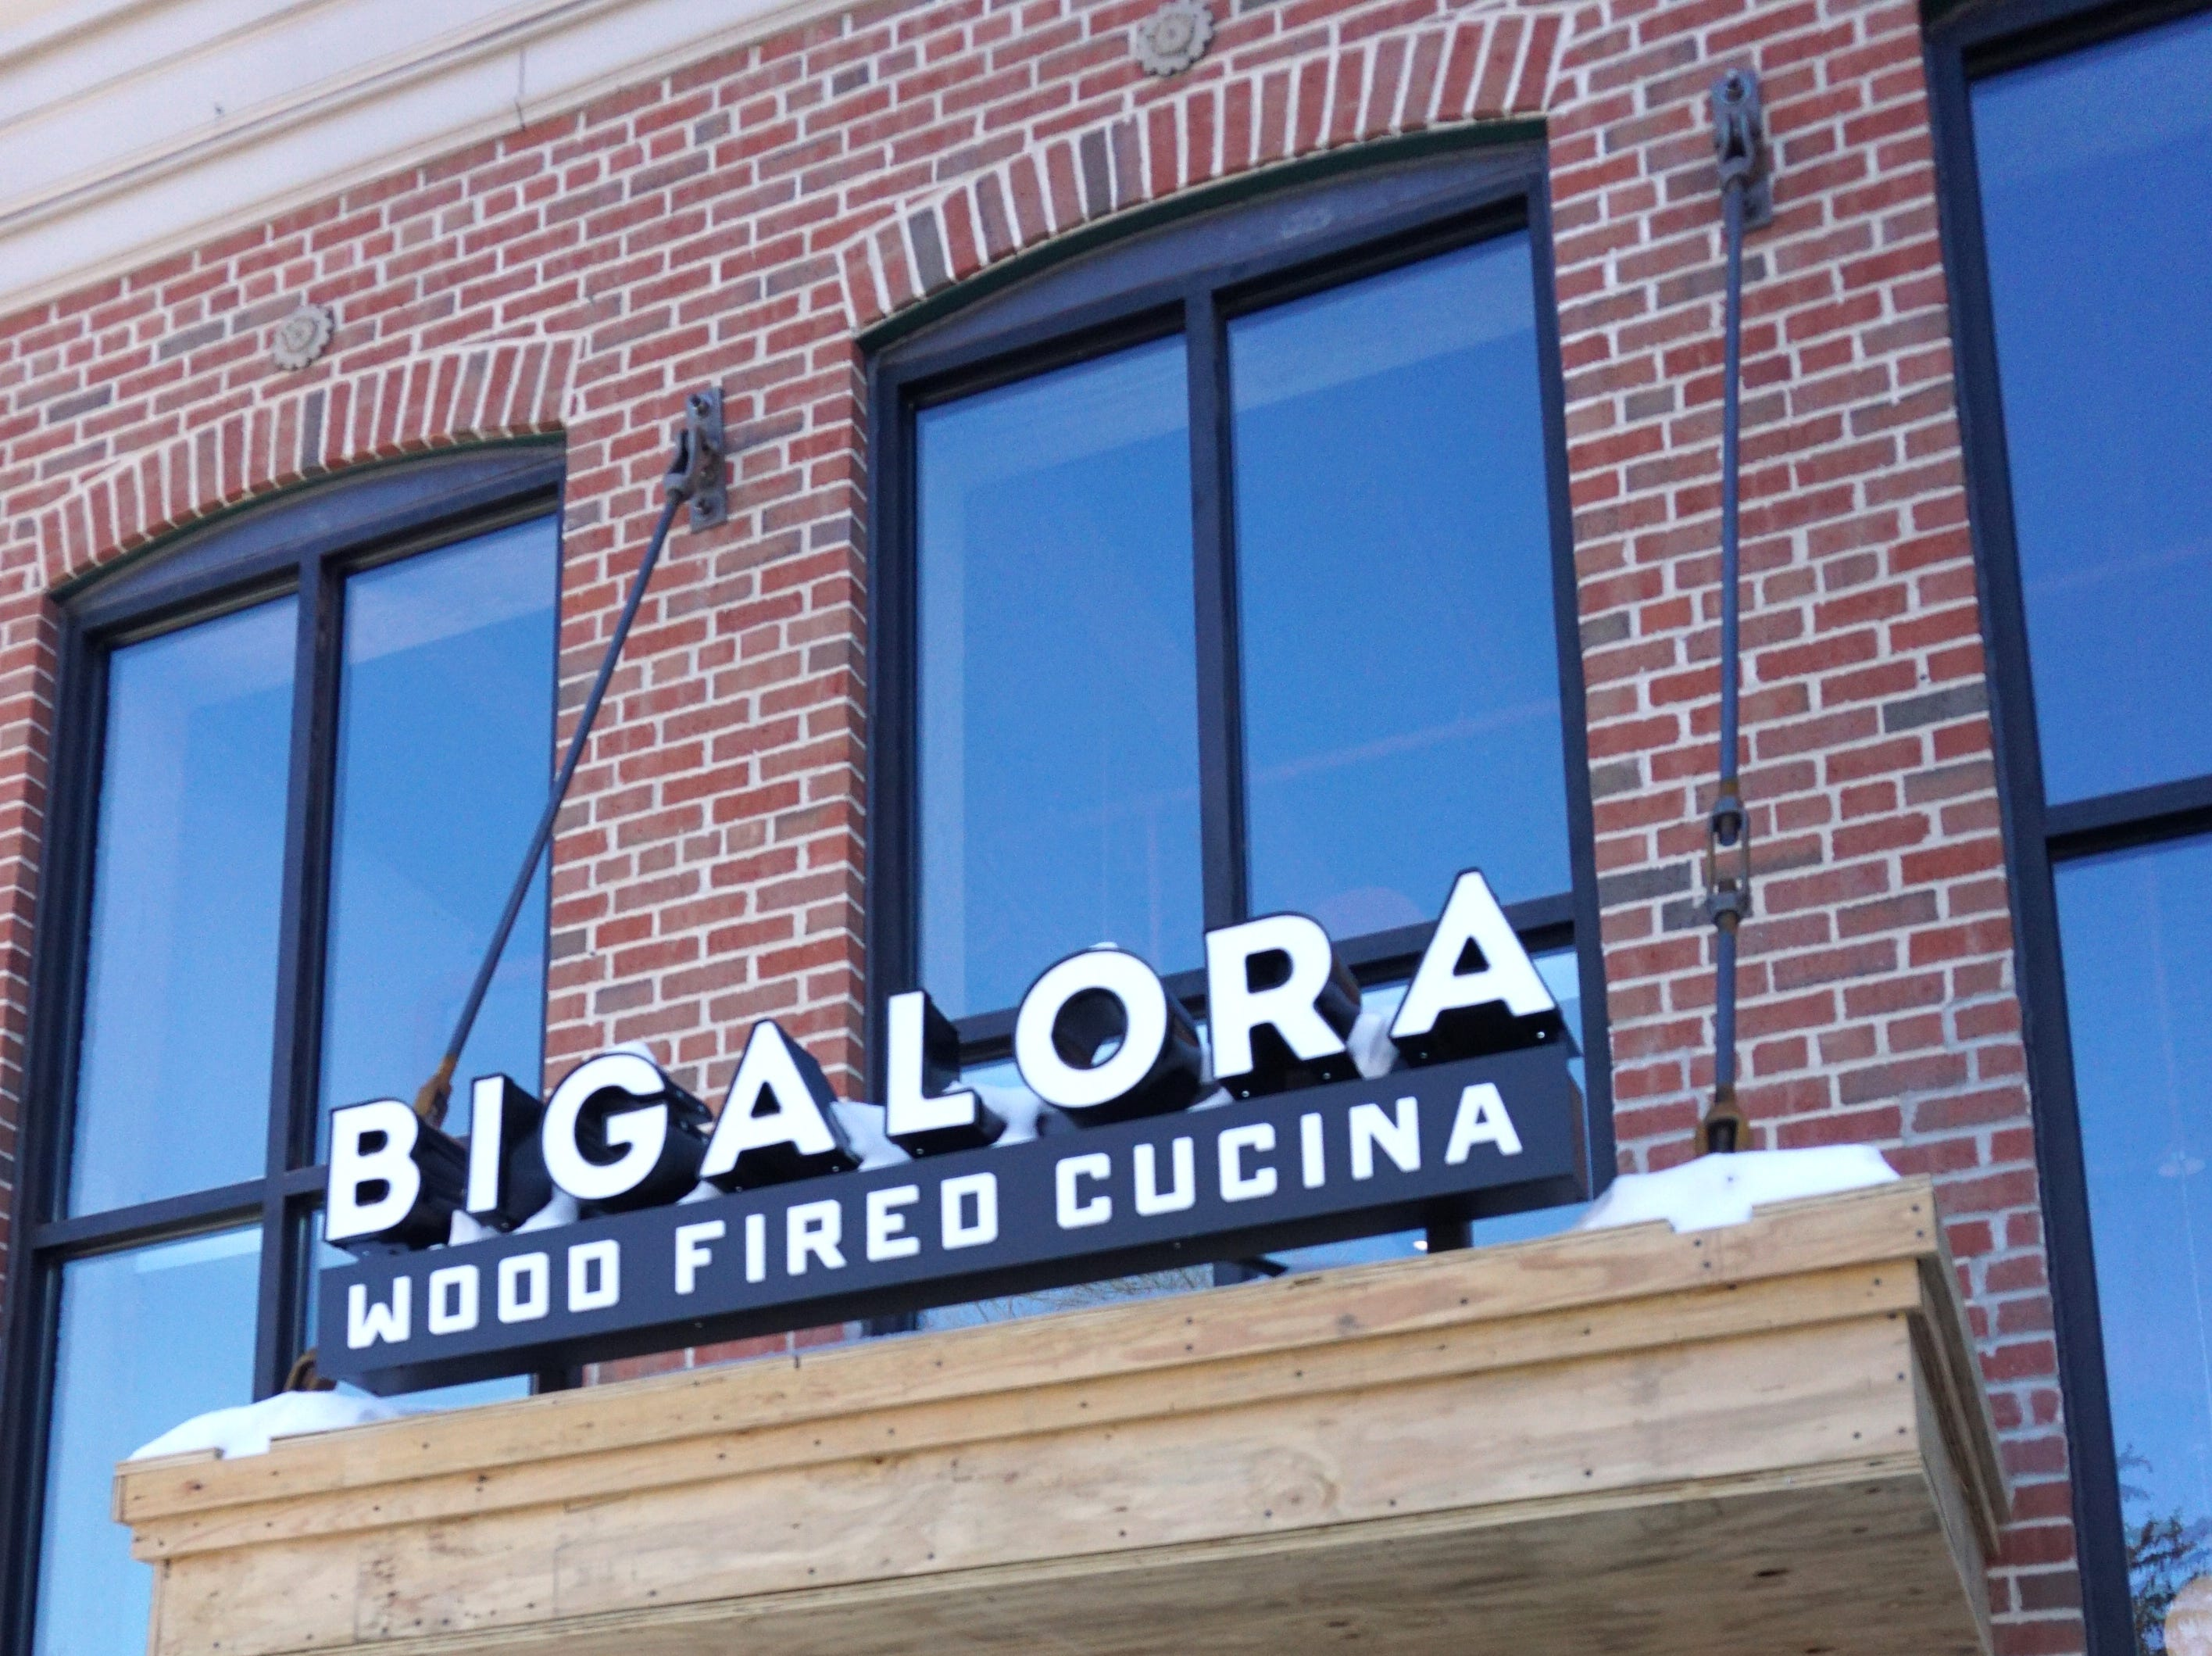 The recently-opened Bigalora cucina at 777 W Ann Arbor Trail in Plymouth. The Italian eatery is in the same spot as the former Box Bar in downtown Plymouth.